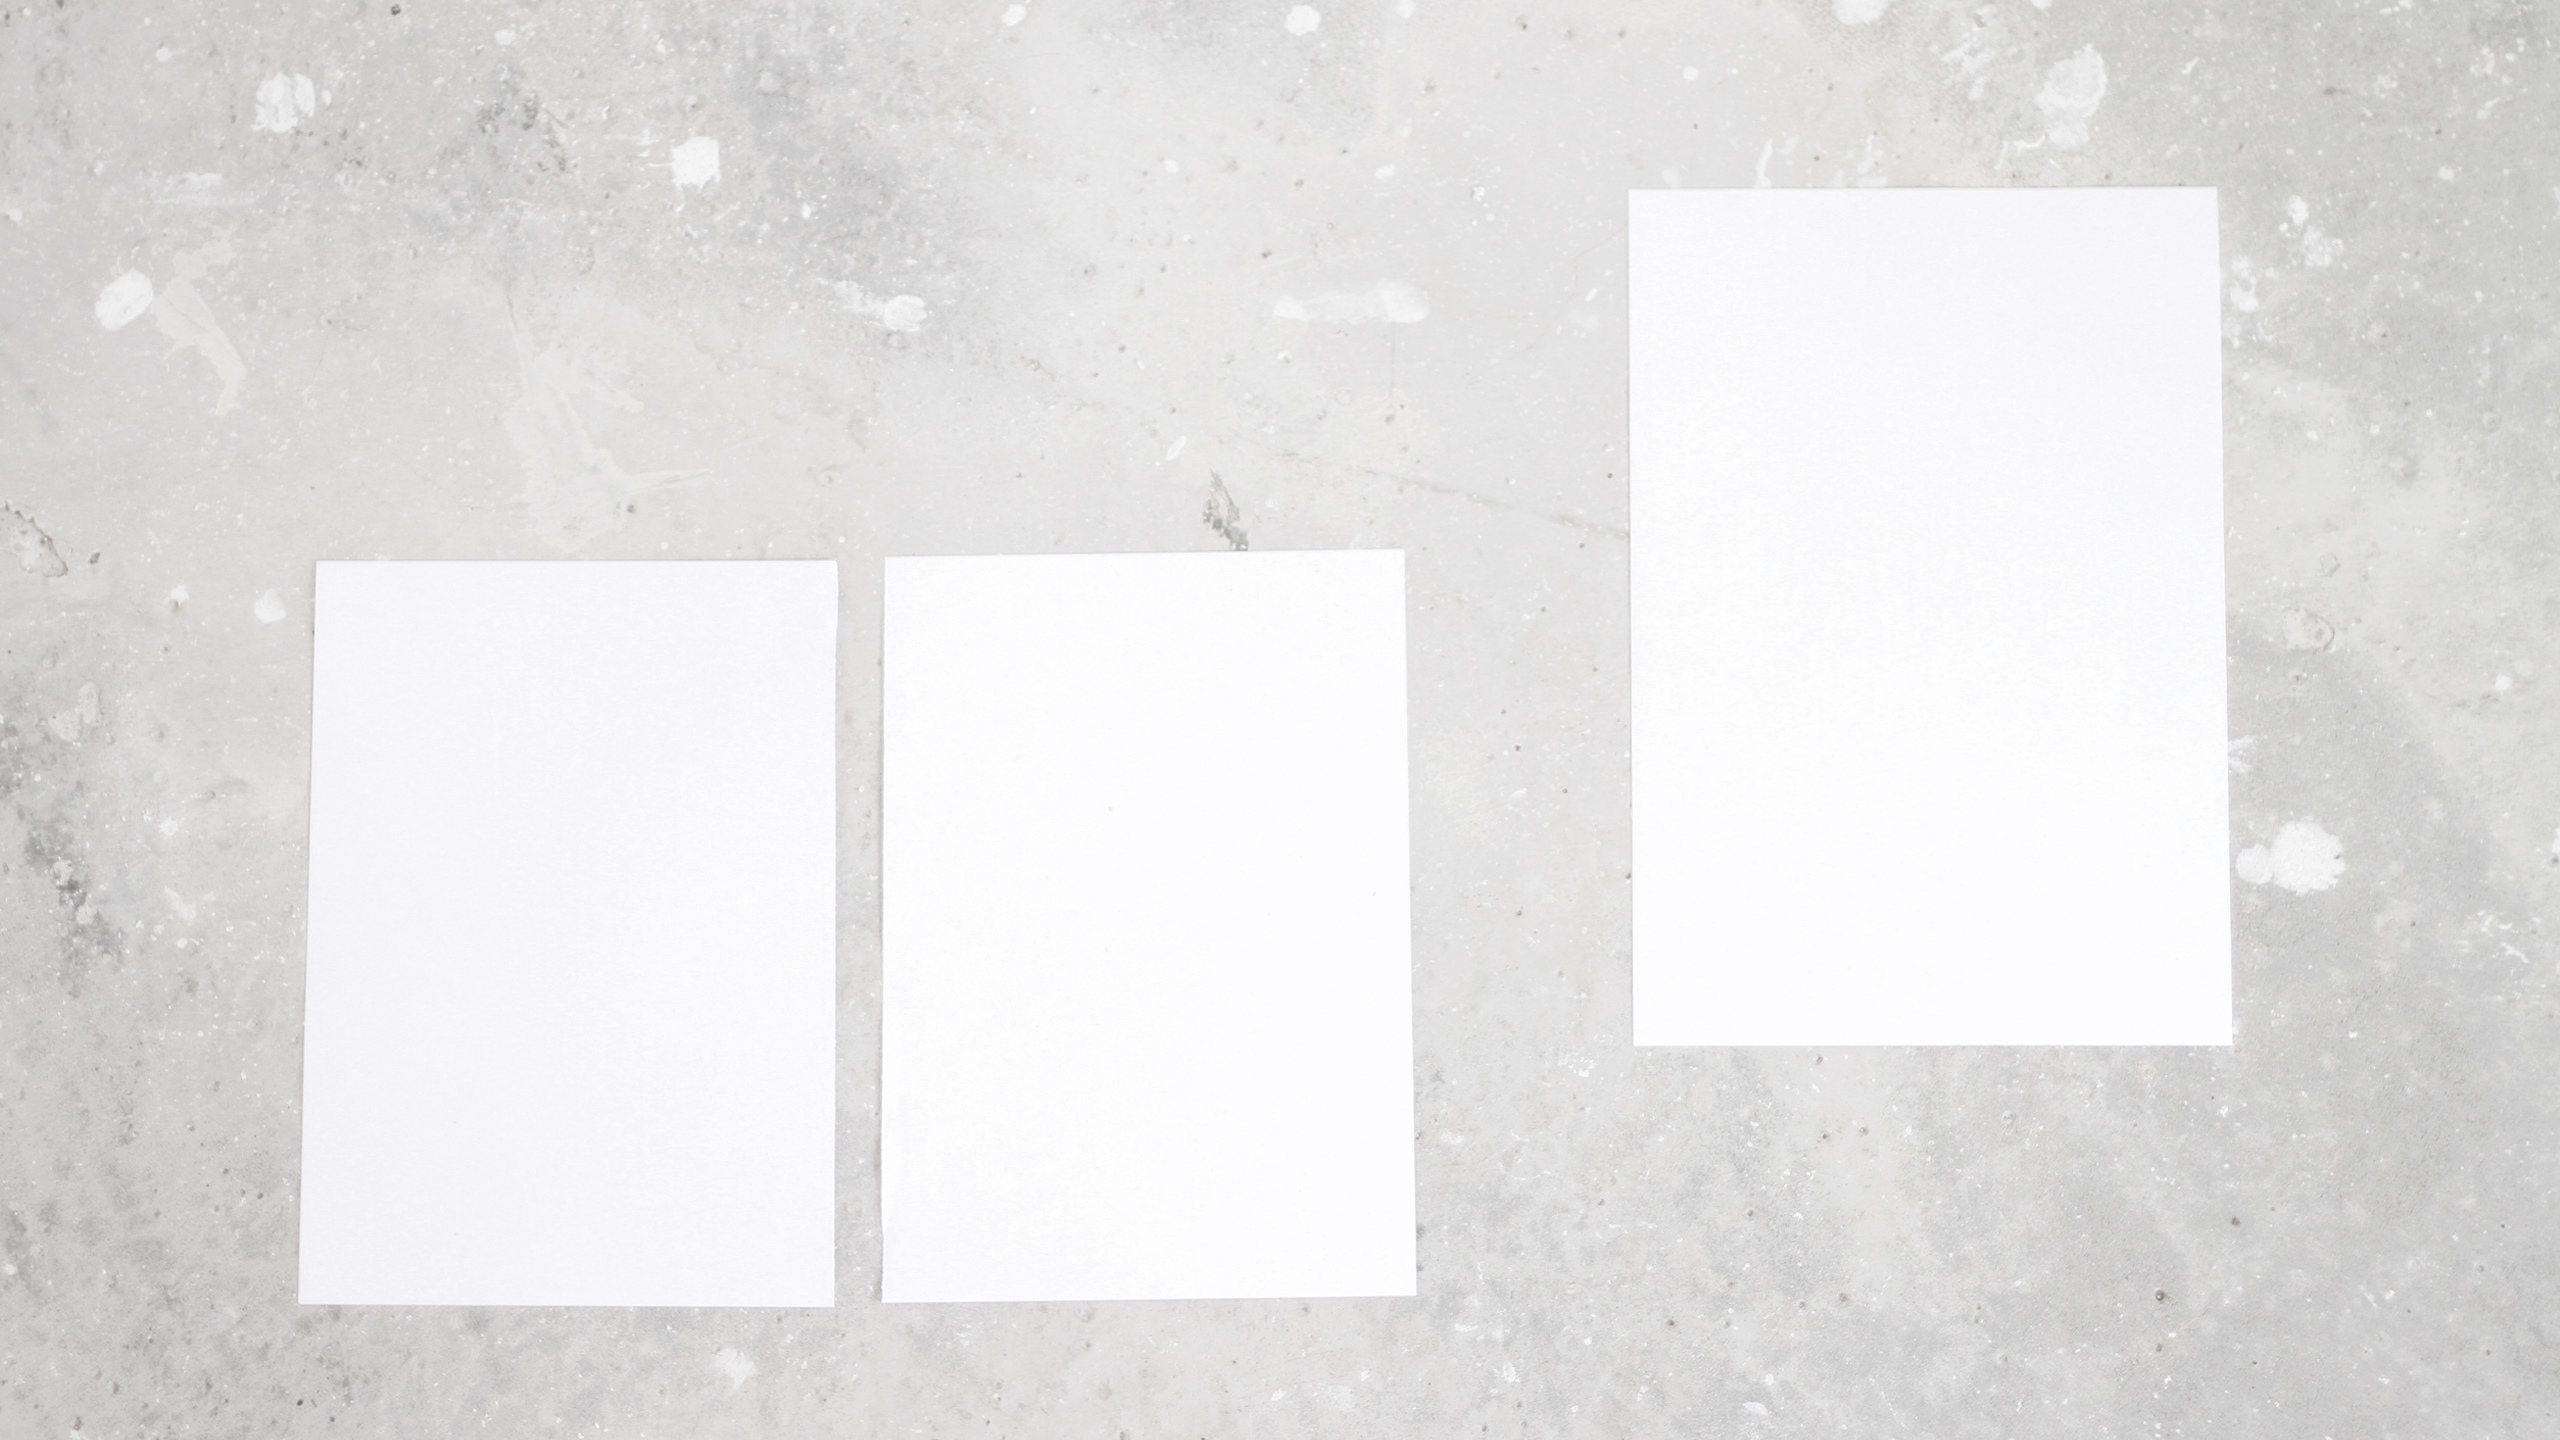 22] White Aesthetic Wallpapers on WallpaperSafari 2560x1440